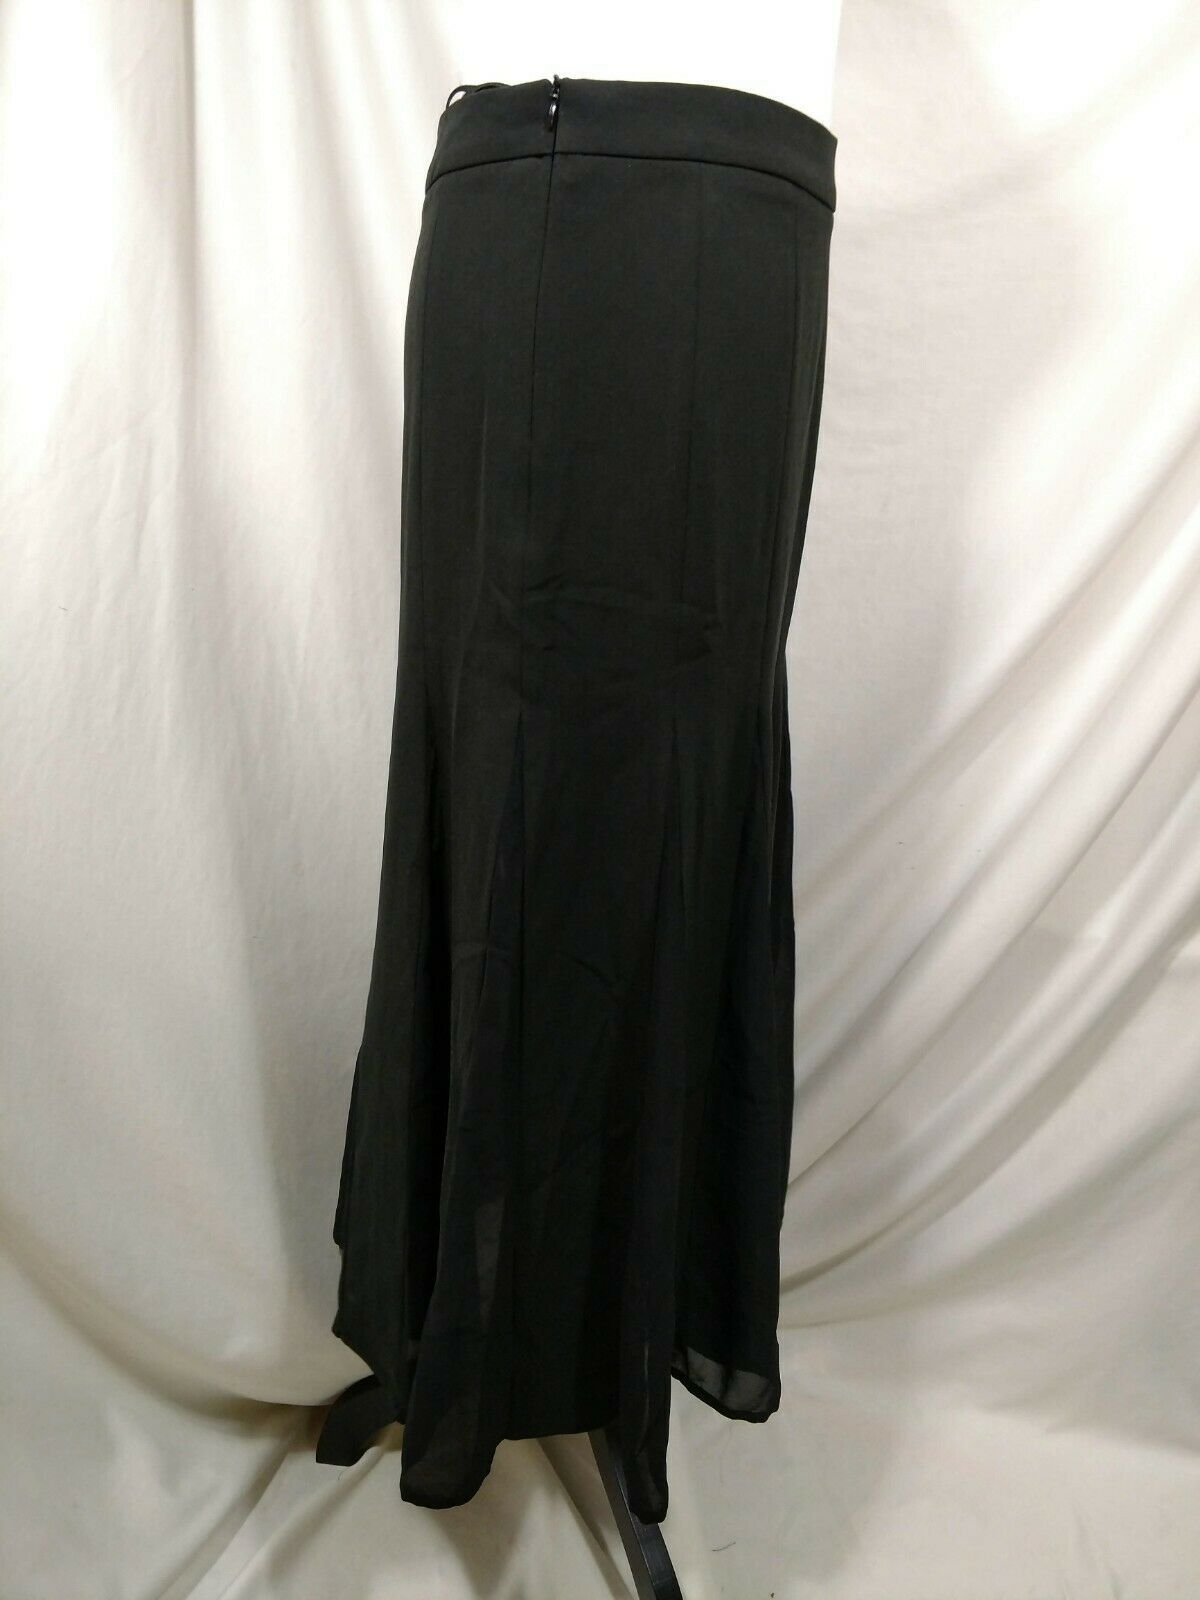 "STYLEWE Black Skirt Medium ""XL"" Flowy Fit & Flare SHANGMAN 6 8 Maxi Long Modest image 3"